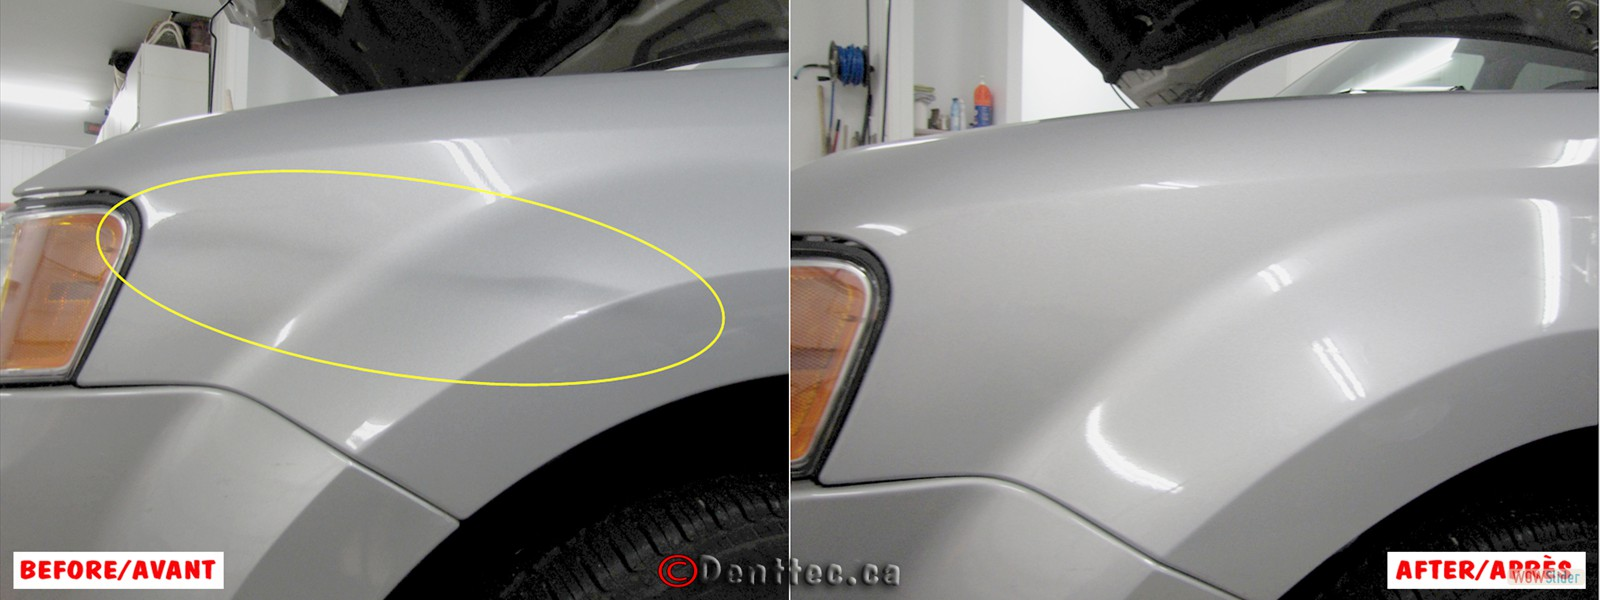 DentTec_38 Long Dent Front Fender